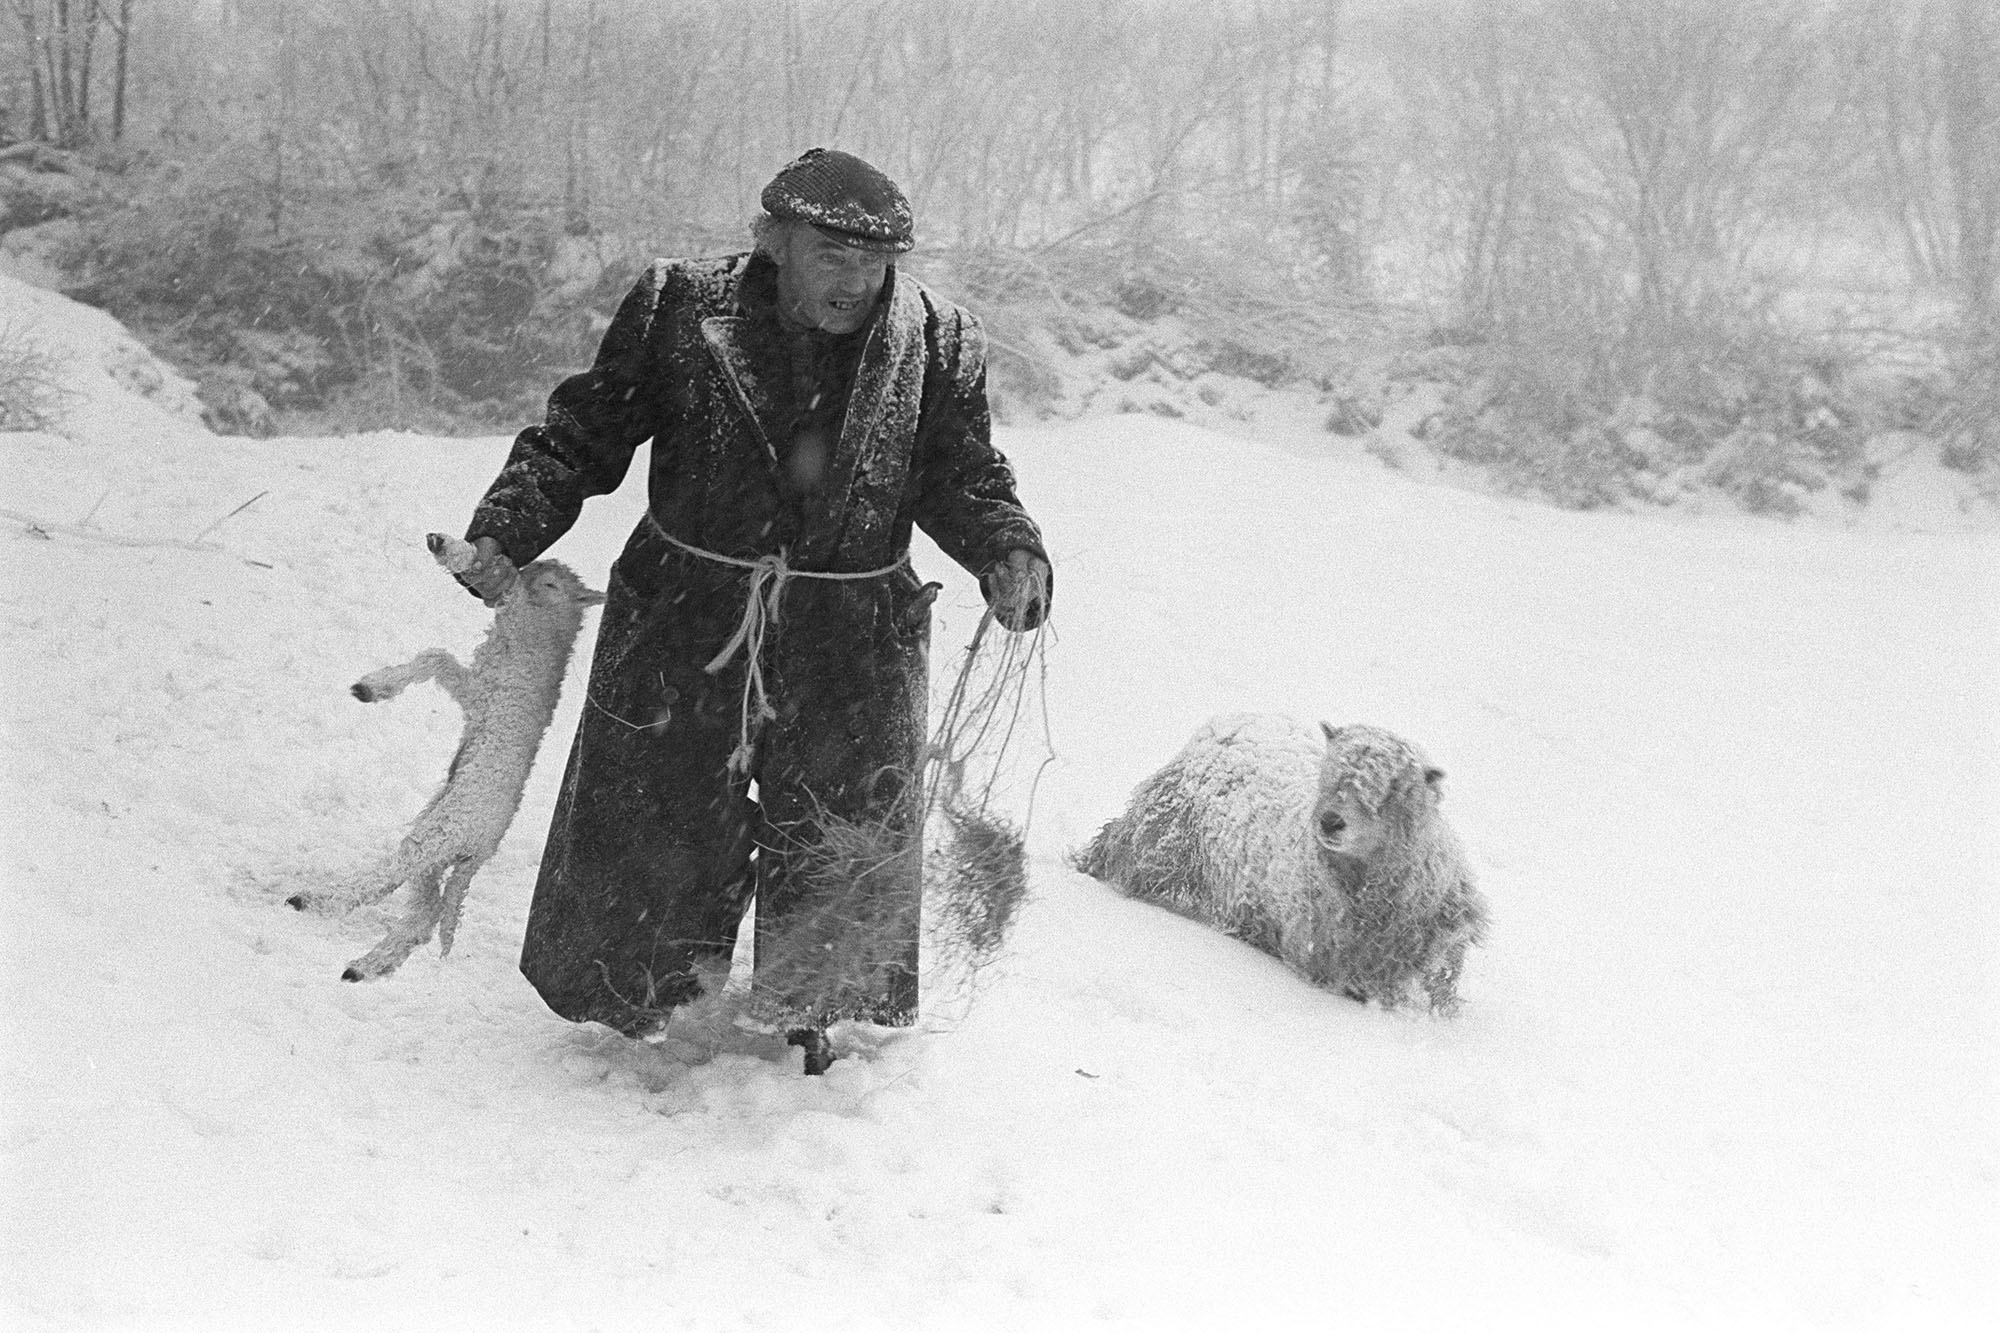 Ivor Brock rescuing a lamb in a blizzard, Millhams, Dolton, February 1978